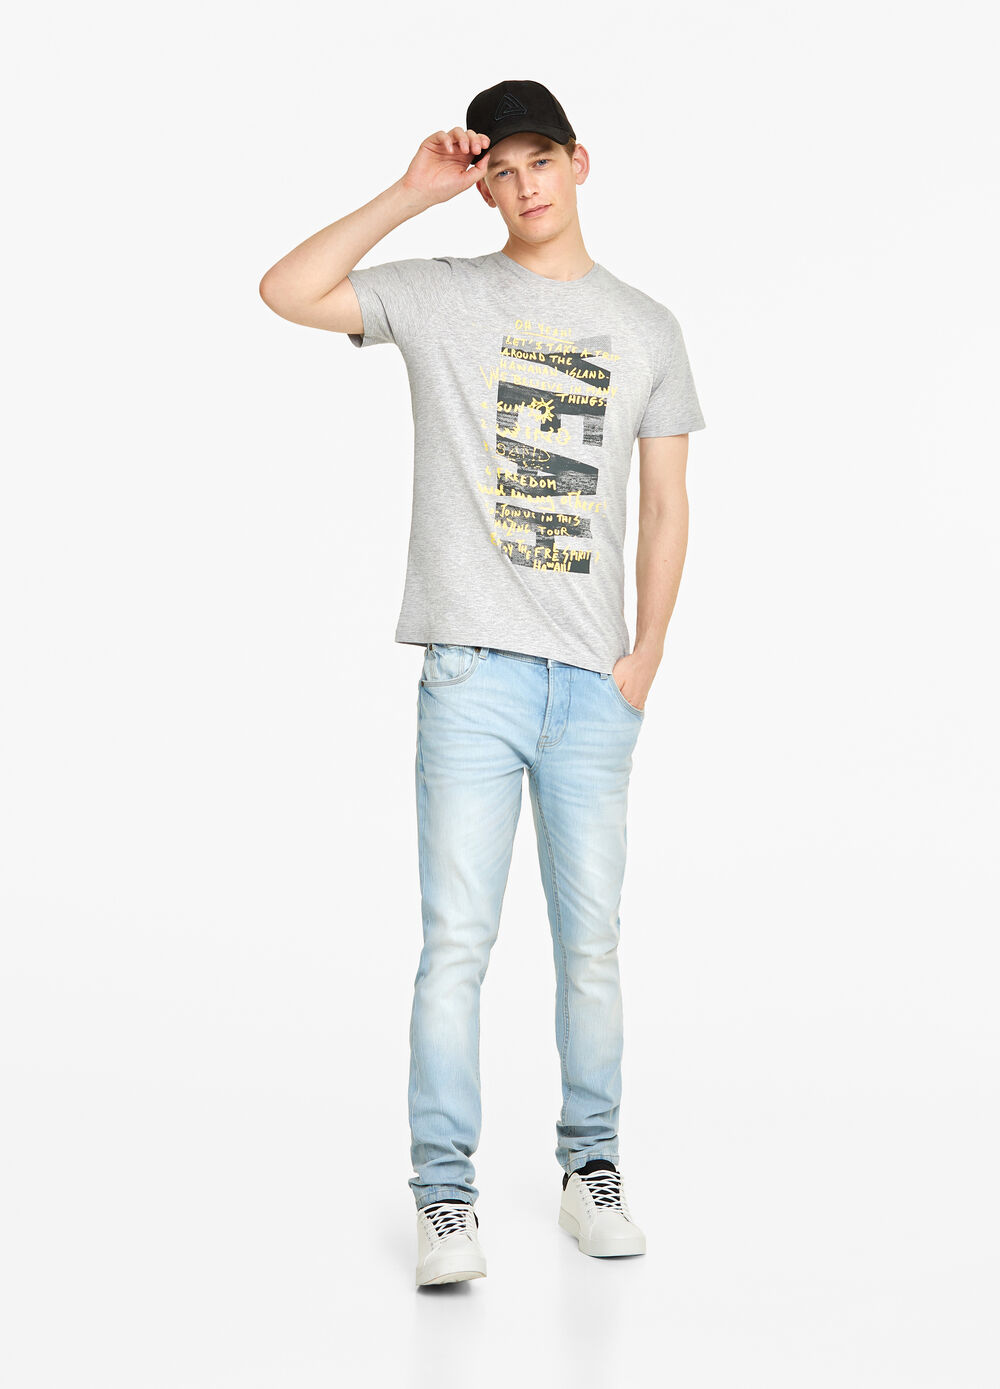 Mélange T-shirt with printed lettering